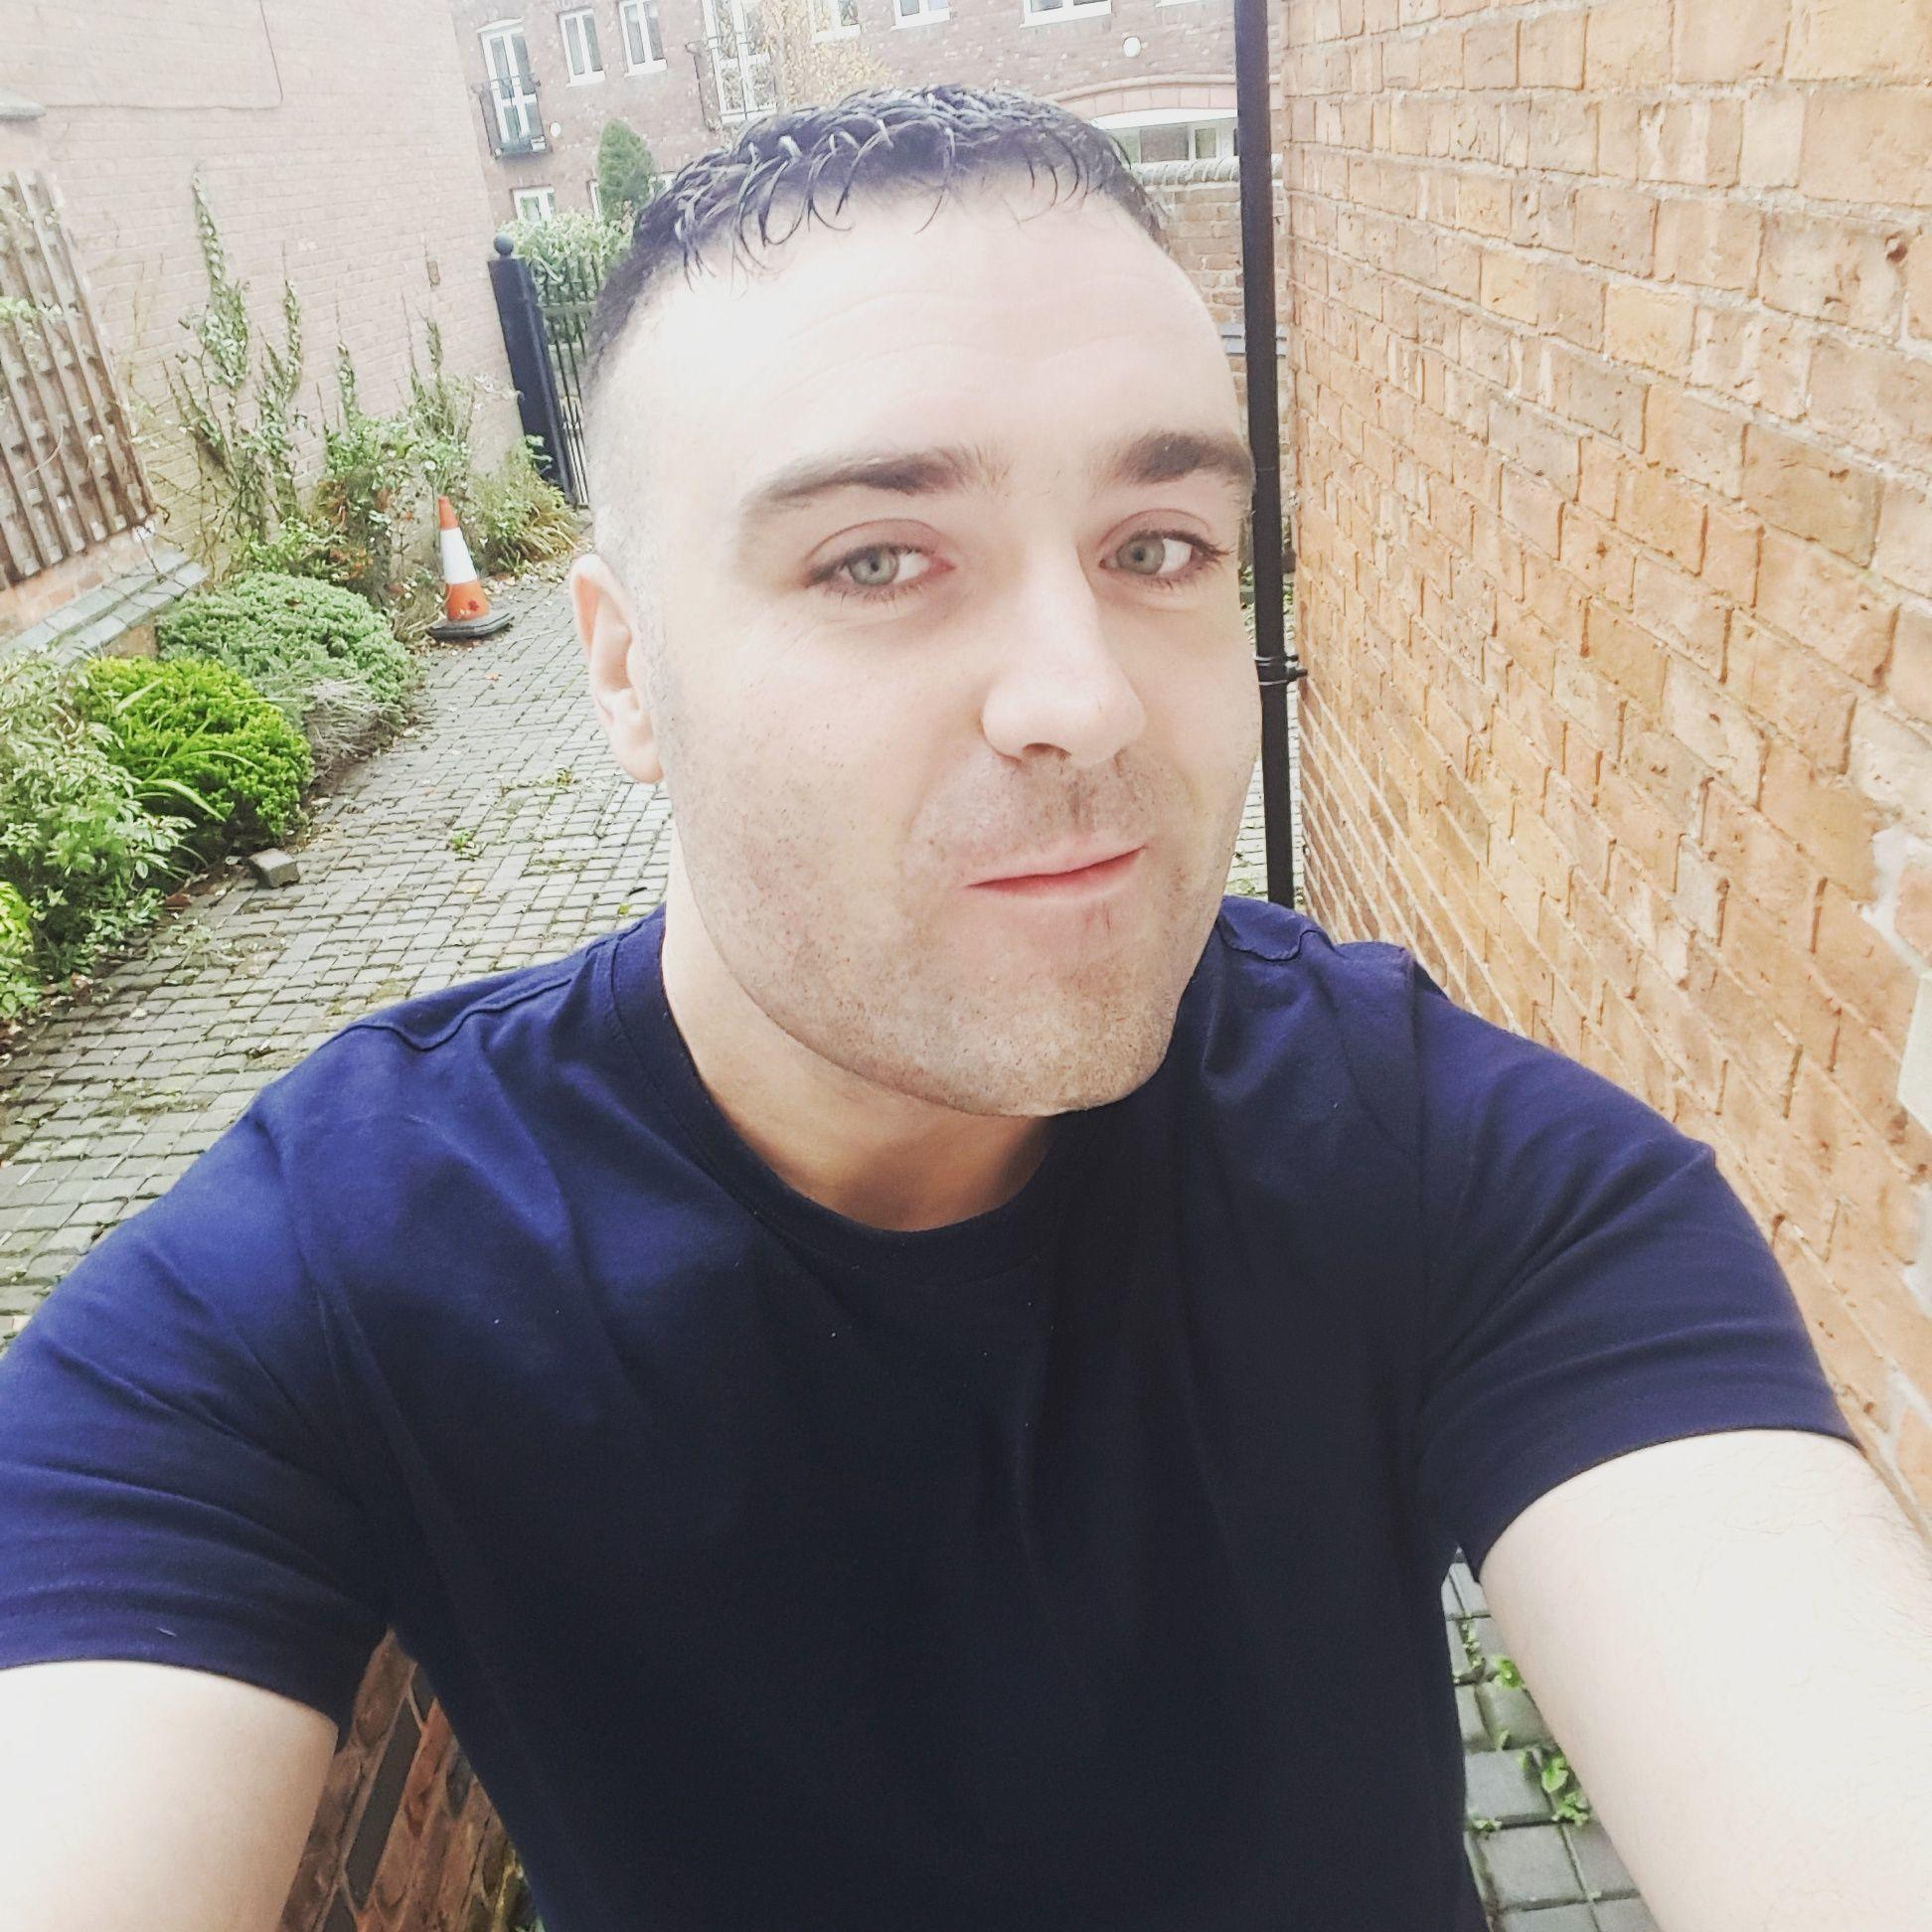 meet alex singles Attend lovestruck london dating events a fun, relaxed way to meet new people free events for members and non-members alike.